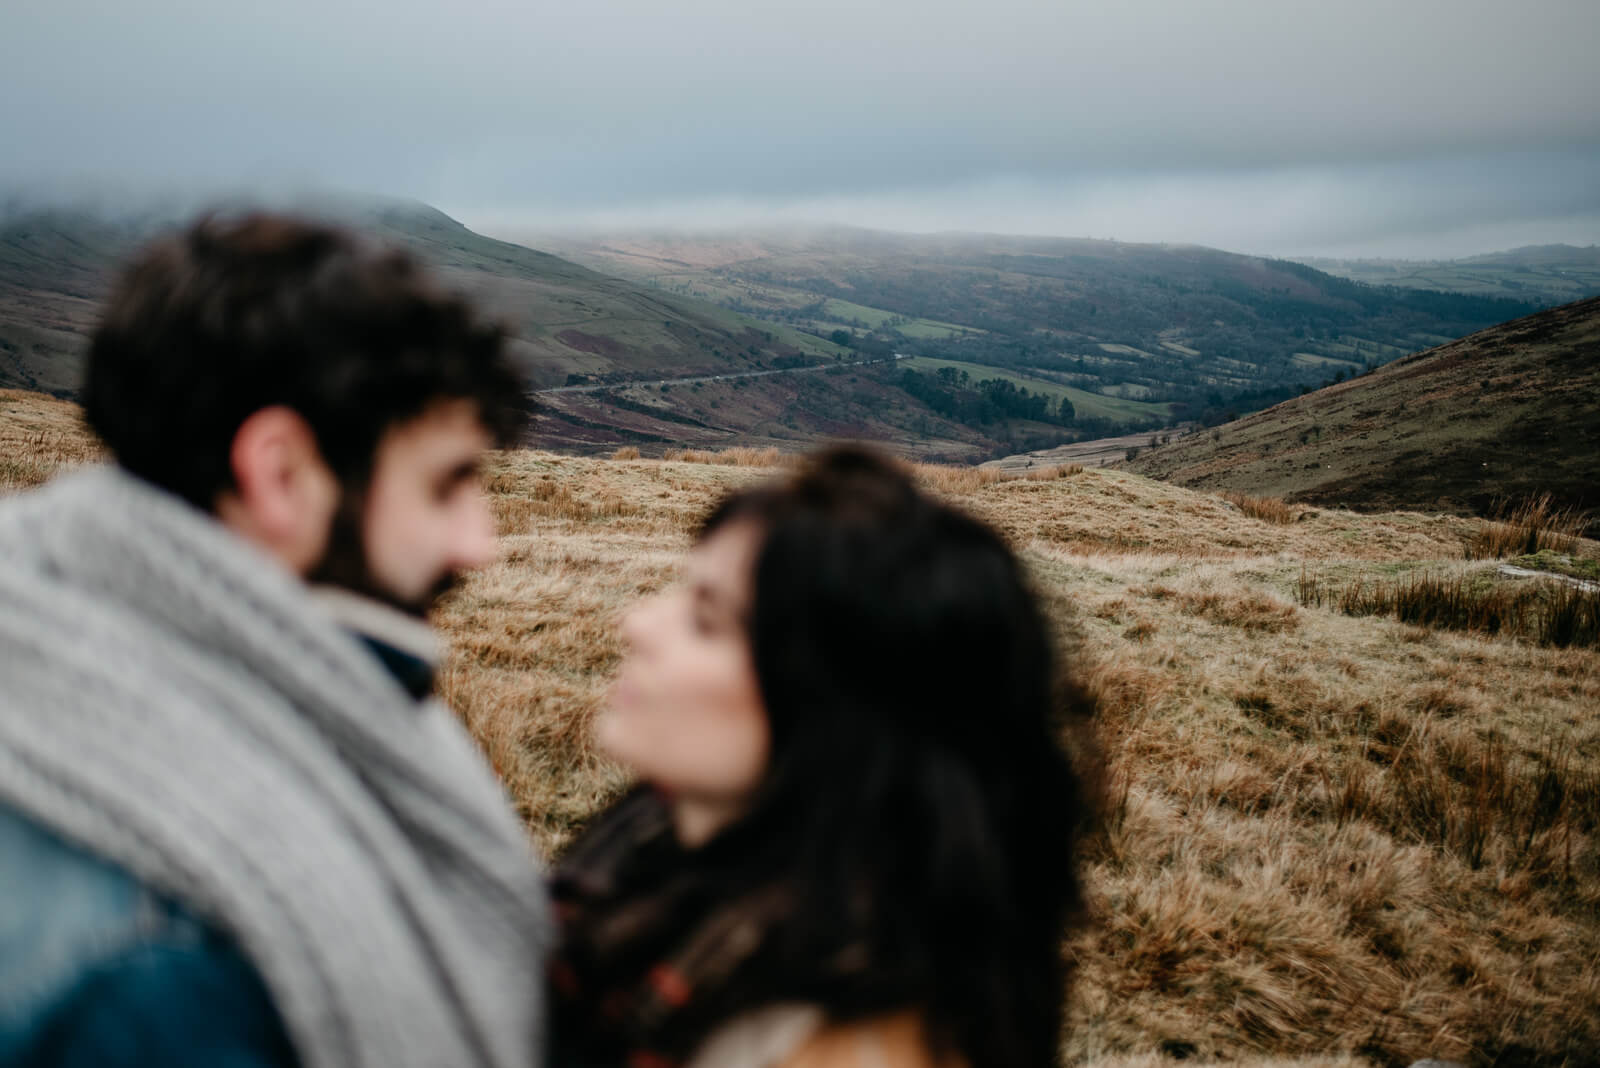 Adventurous wedding and engagement photography is Brecon Beacons in South Wales